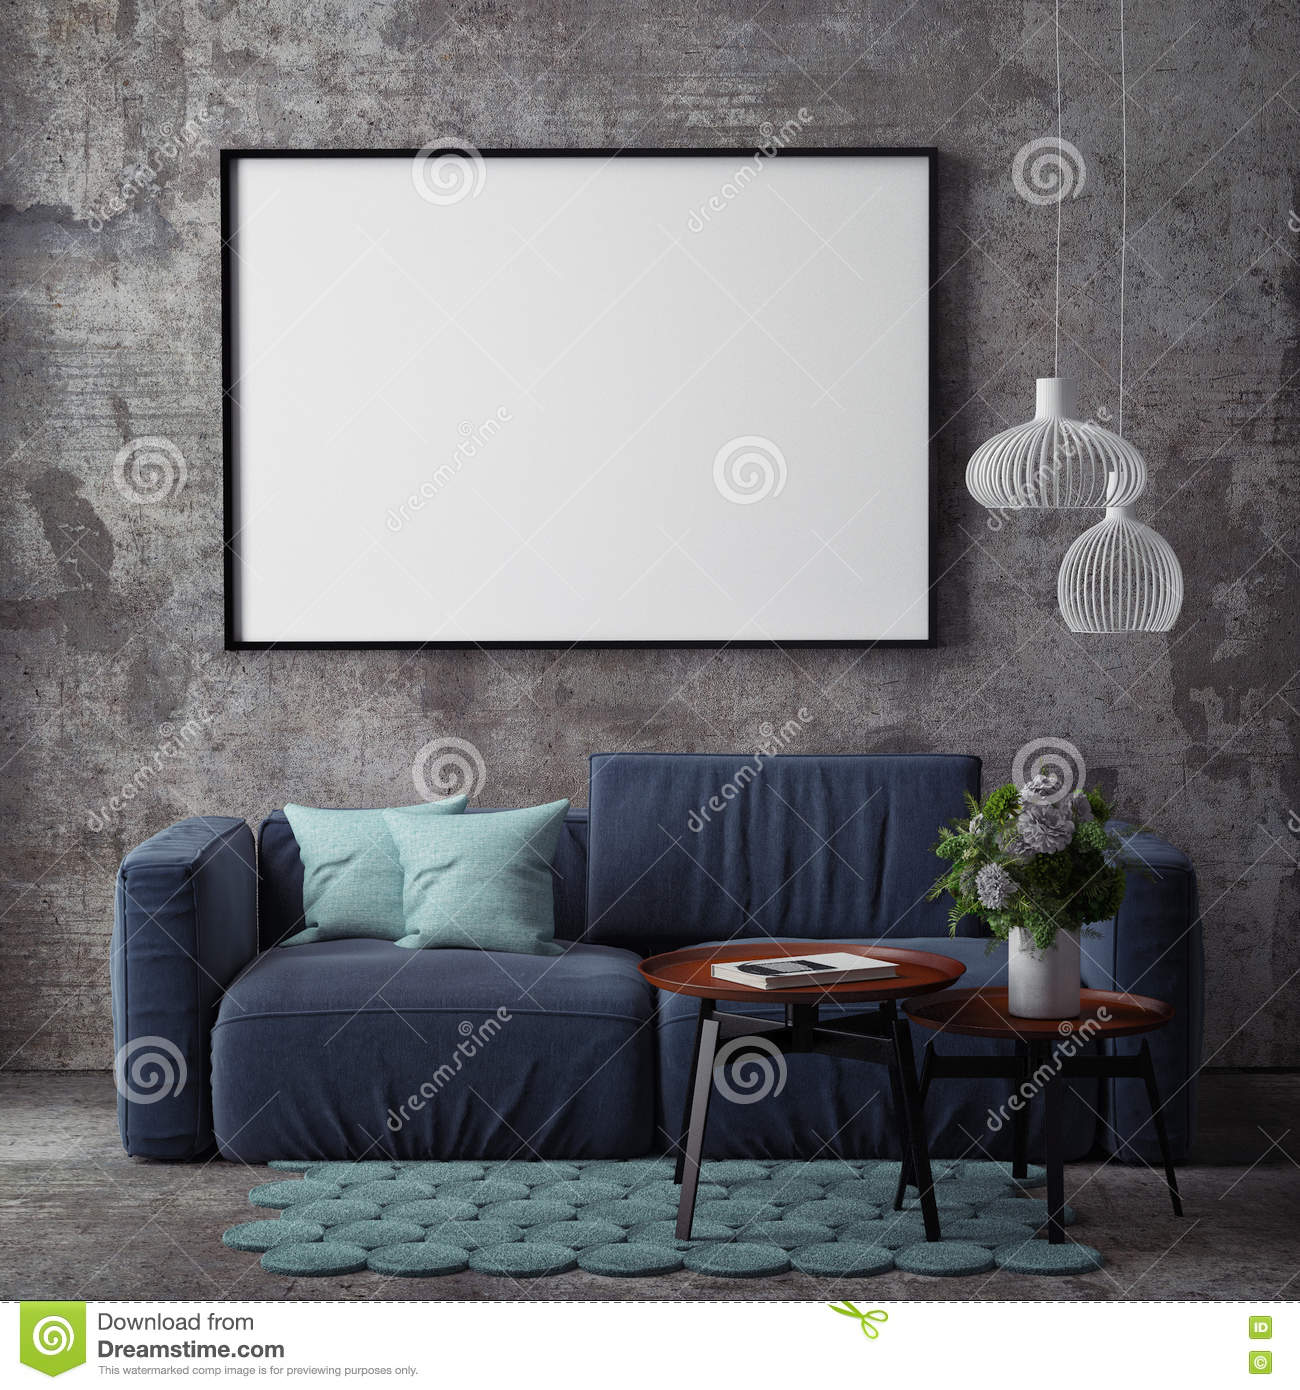 Mock up poster with vintage hipster loft interior background,